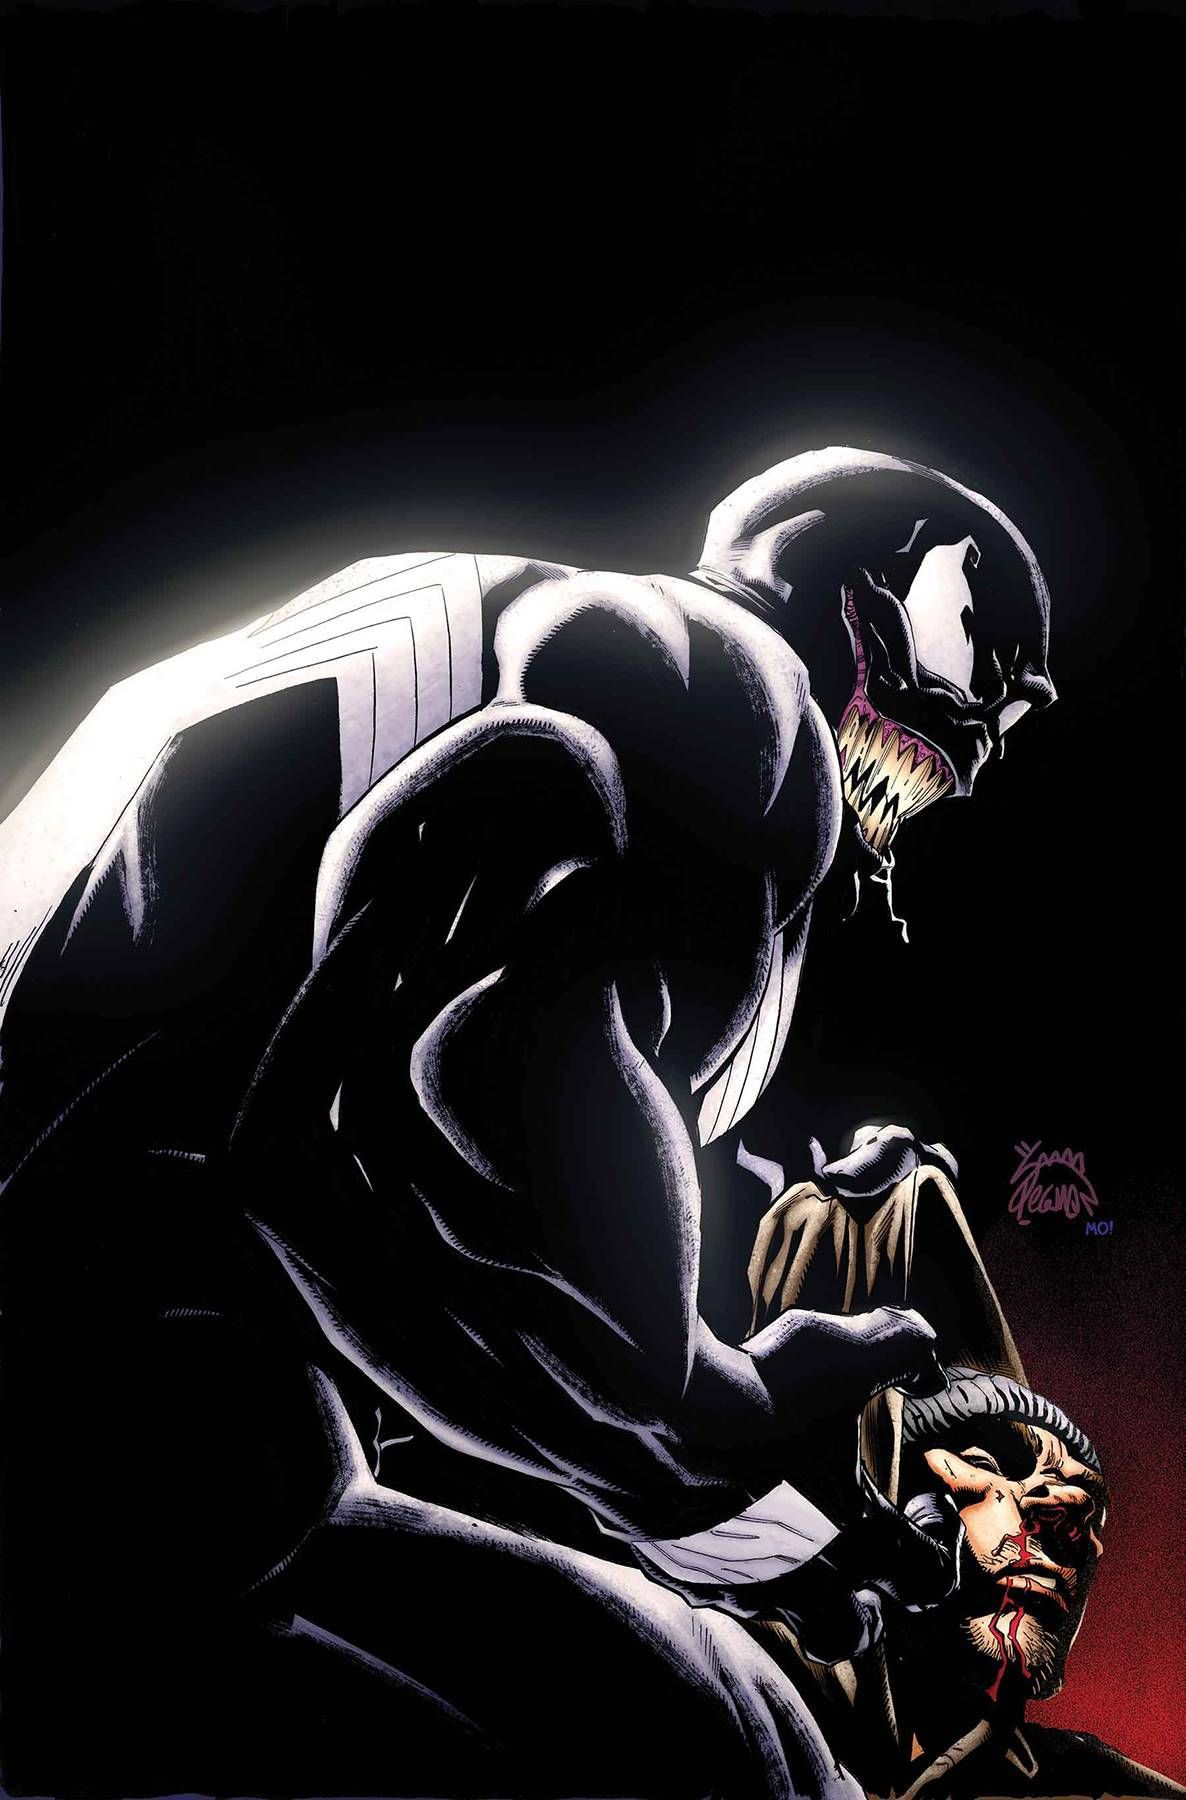 Venom #164 Countdown to Donny Cates starts here! Presale 5 copy